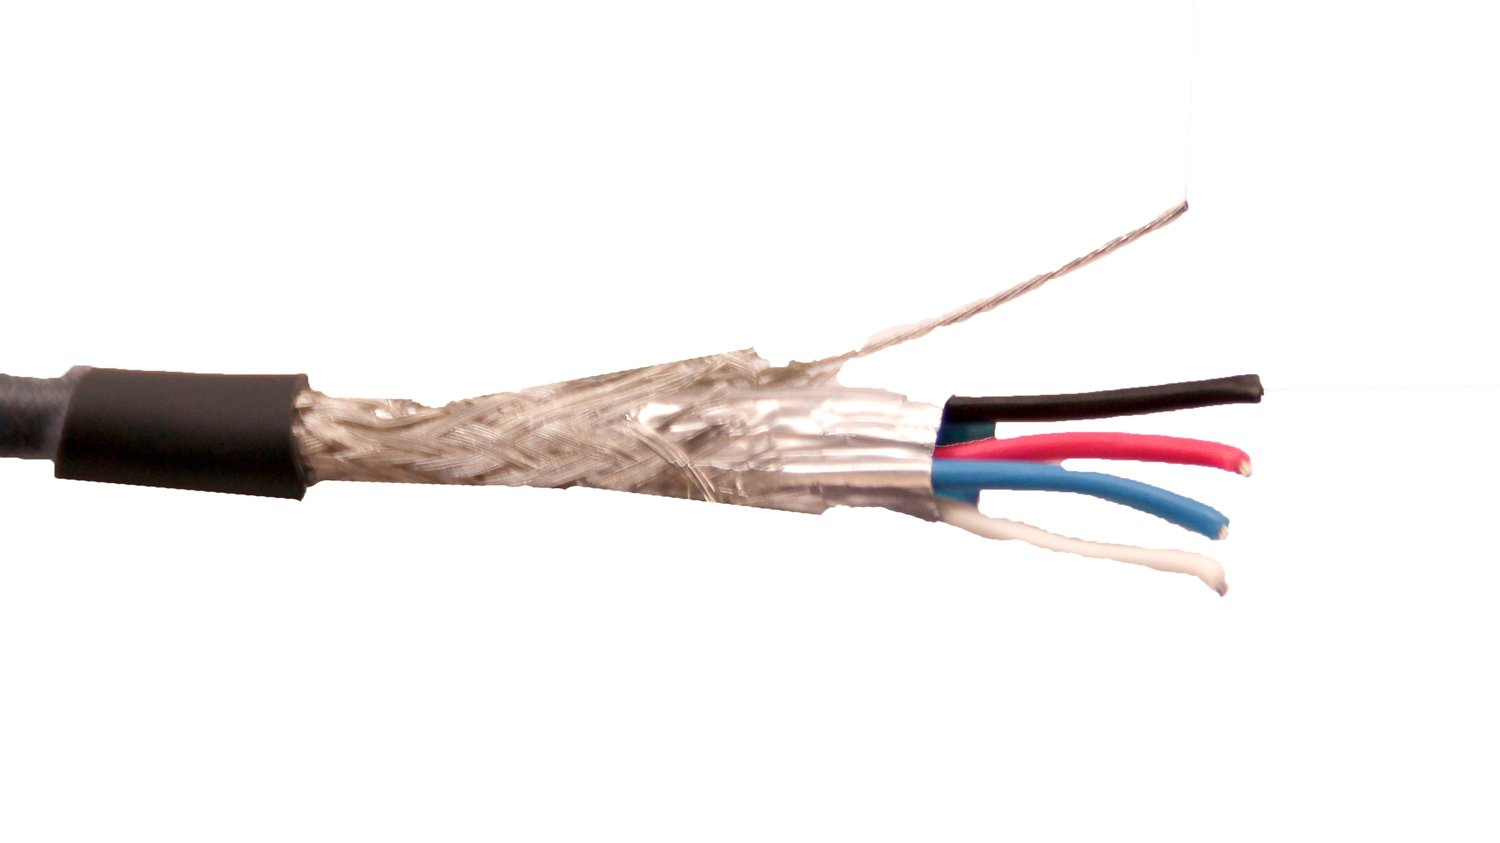 24 AWG High Bandwidth DMX Lighting Cable, Priced per Foot